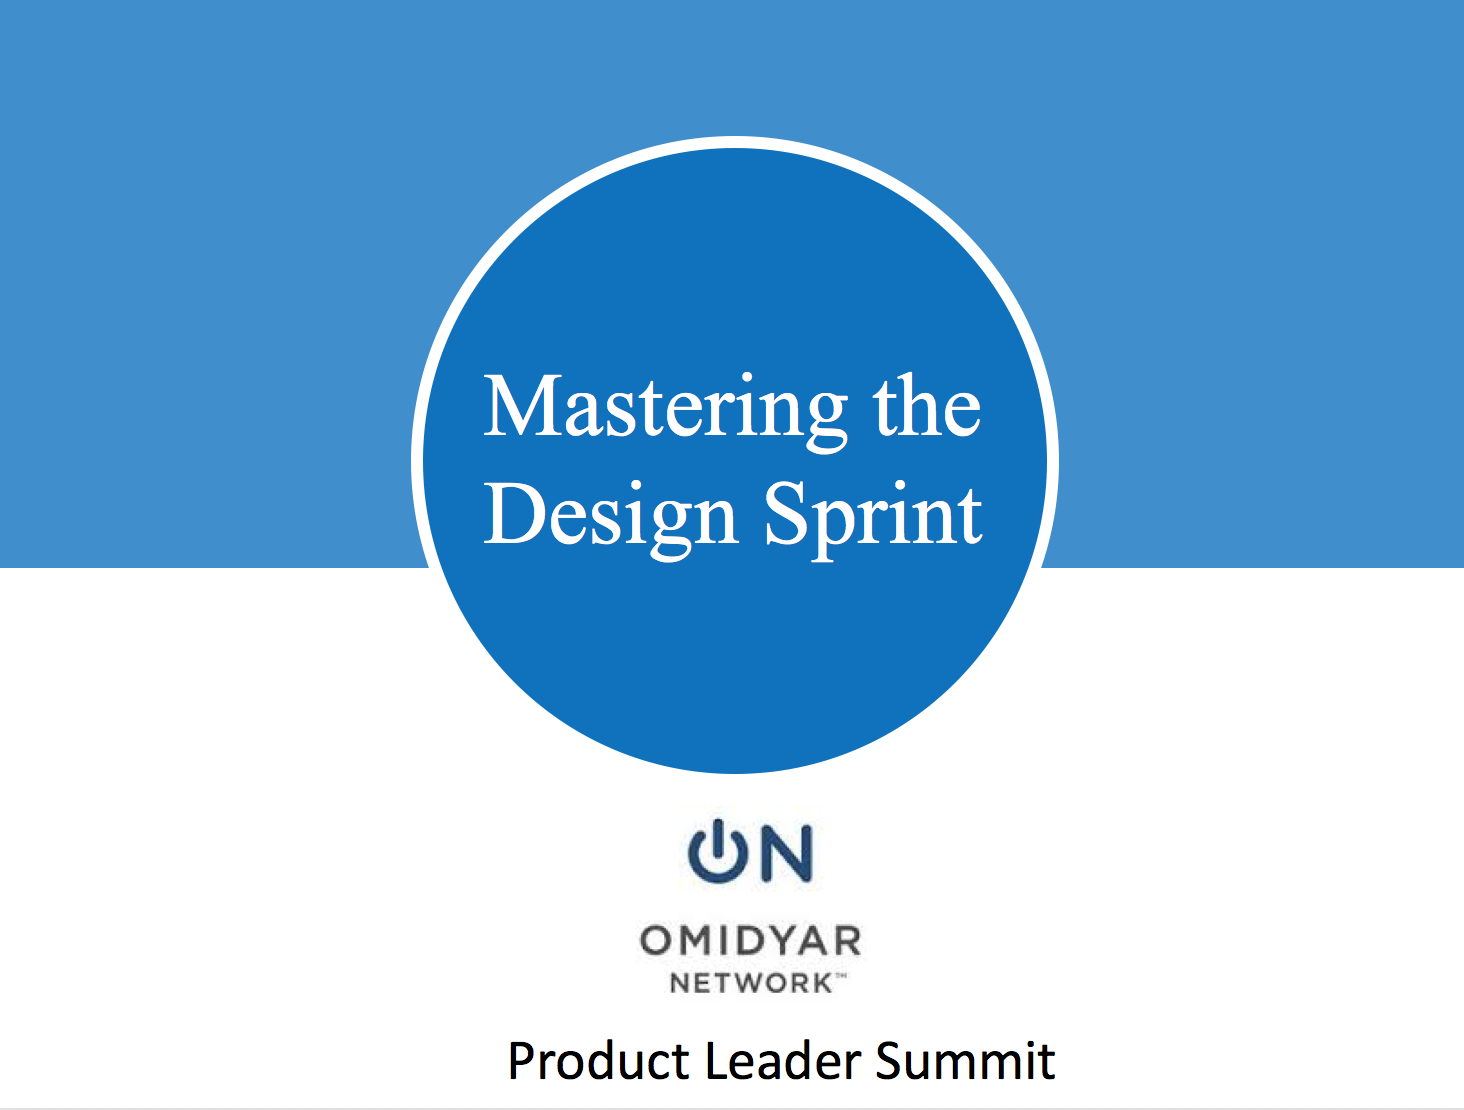 Ashita Achuthan & Ha Nguyen: Mastering the Design Sprint